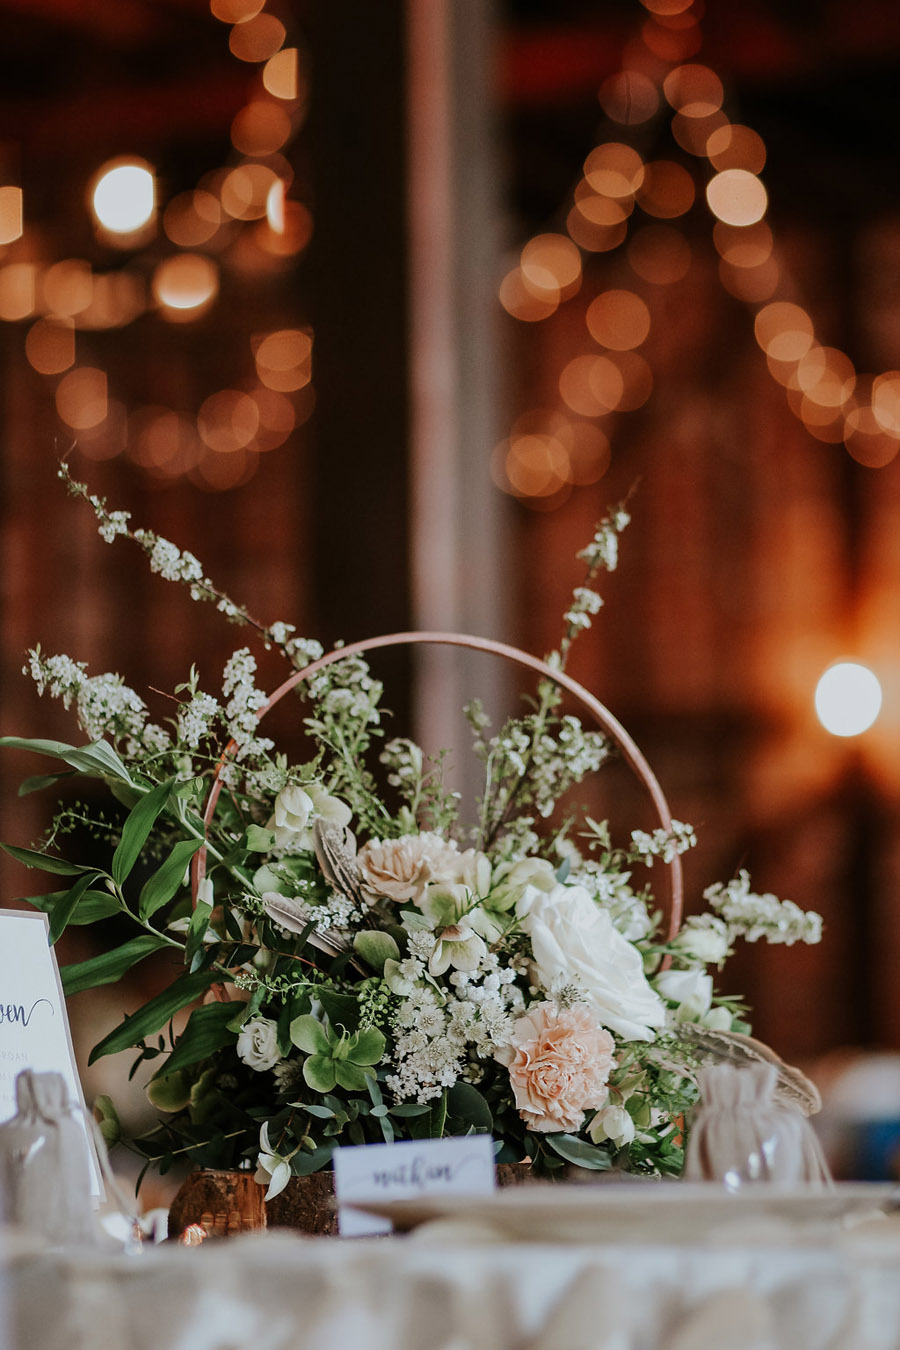 Marks Hall wedding styling in rustic peach, favours by Gilded Fern and photo by Olivia Knight (8)